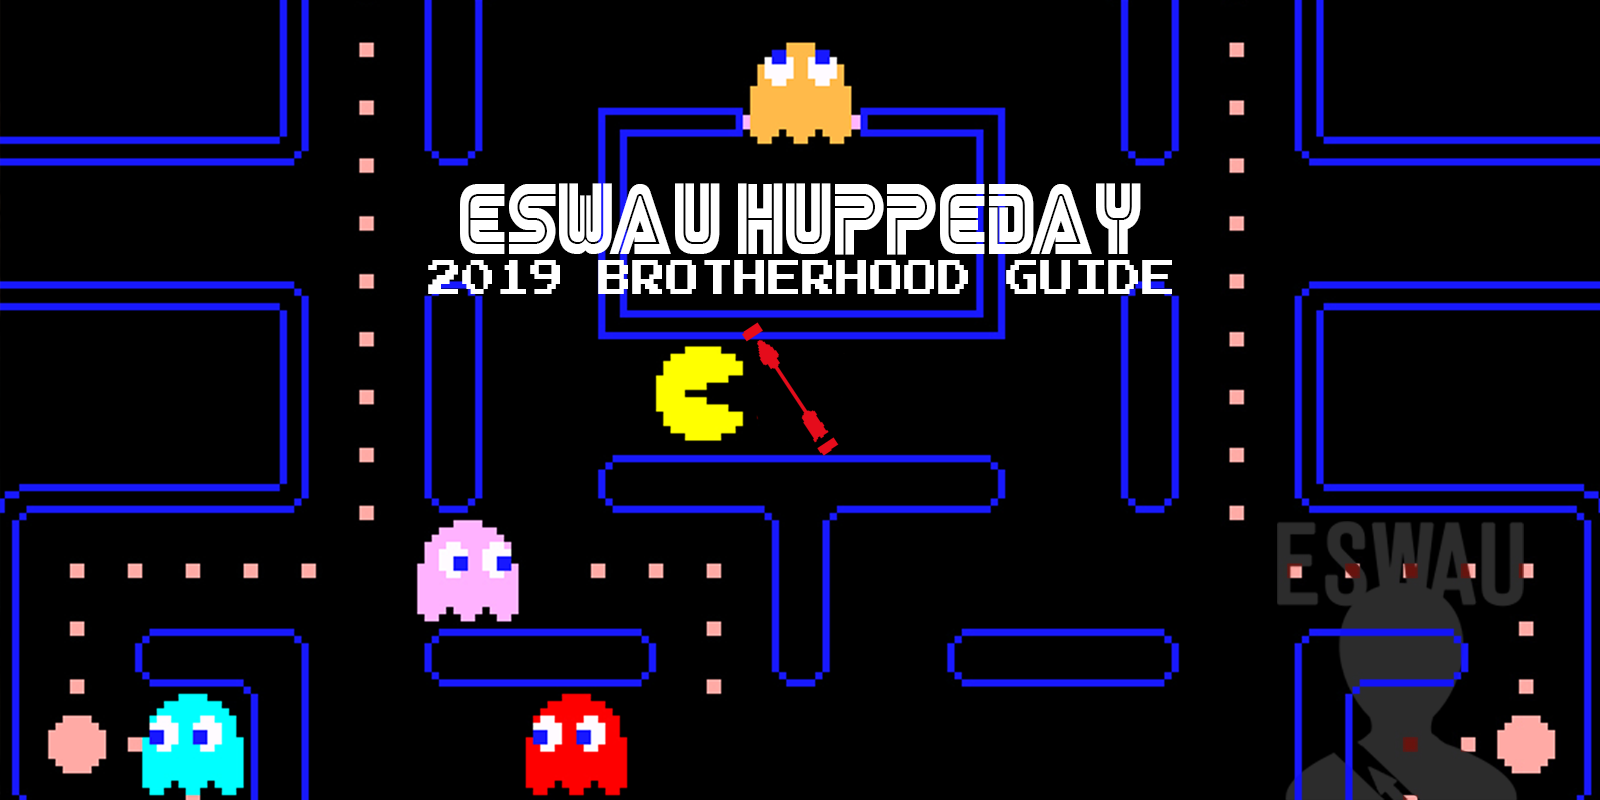 2019 Brotherhood Guide